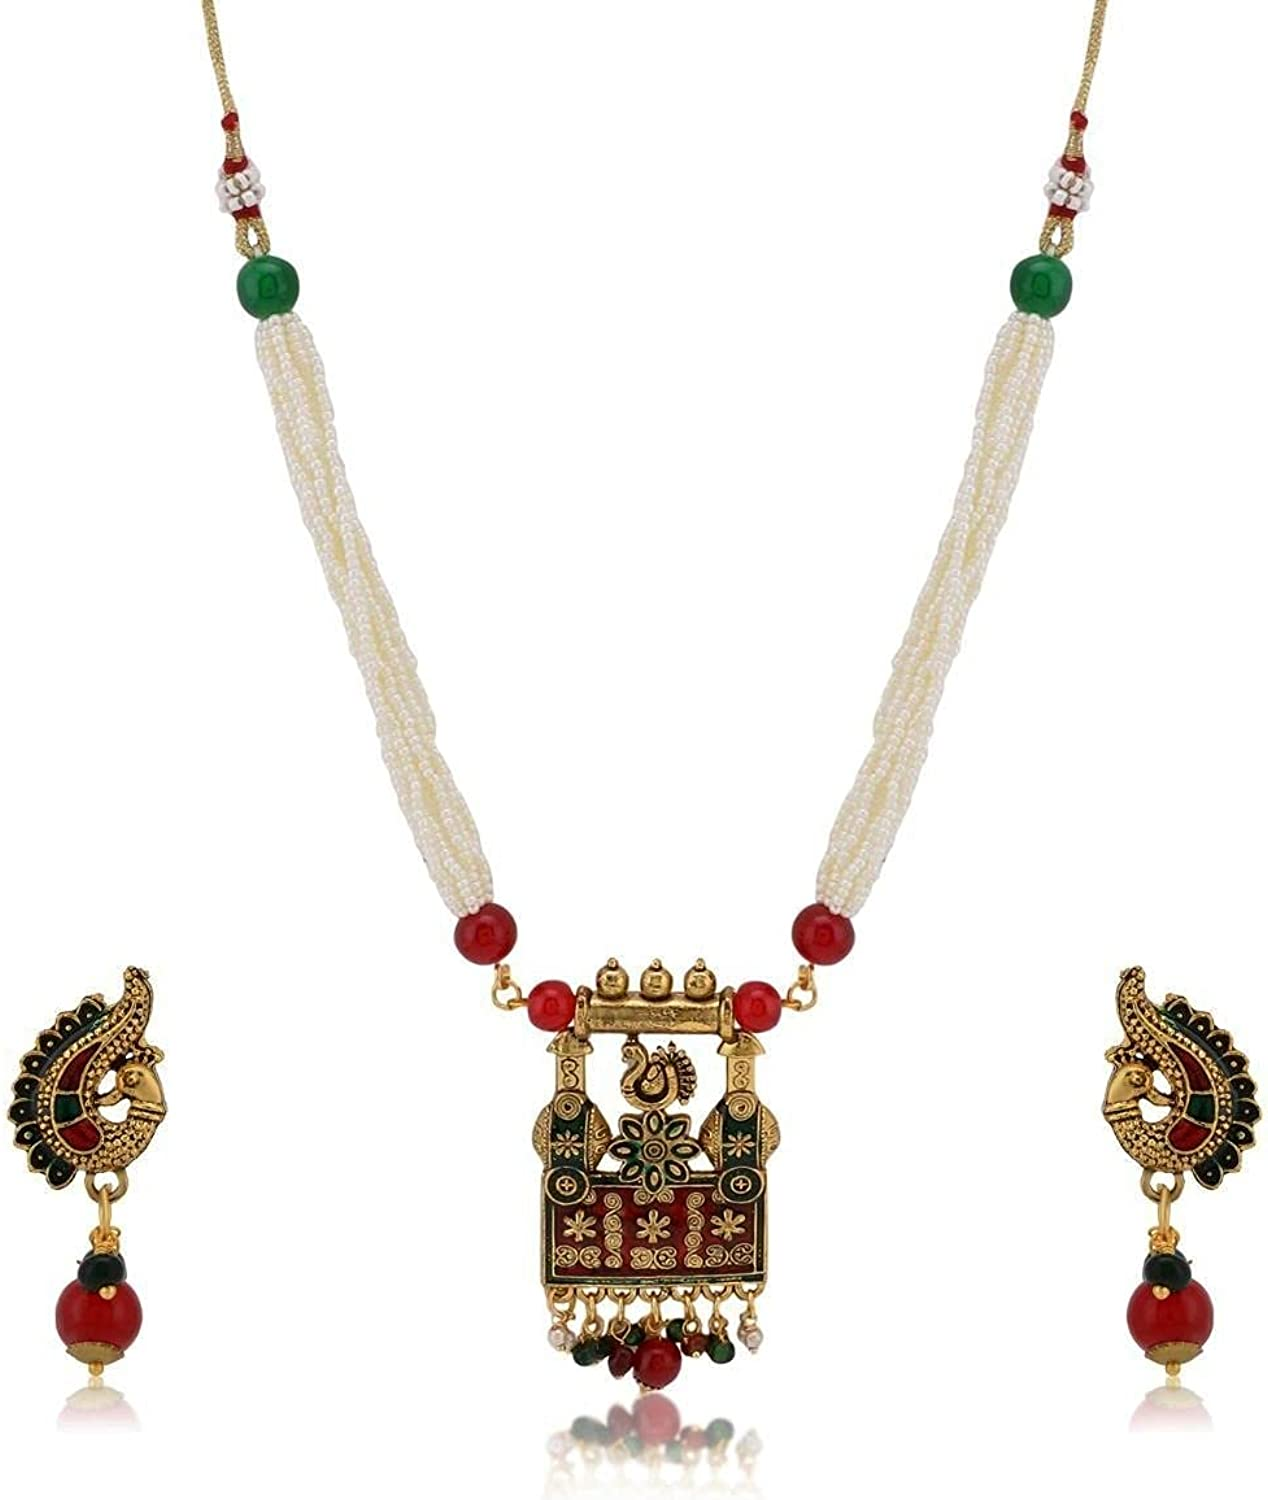 Efulgenz Indian Bollywood Antique Vintage Gold Plated Wedding Faux Pearl Strand Pendant Choker Collar Necklace Earring Jewelry Set